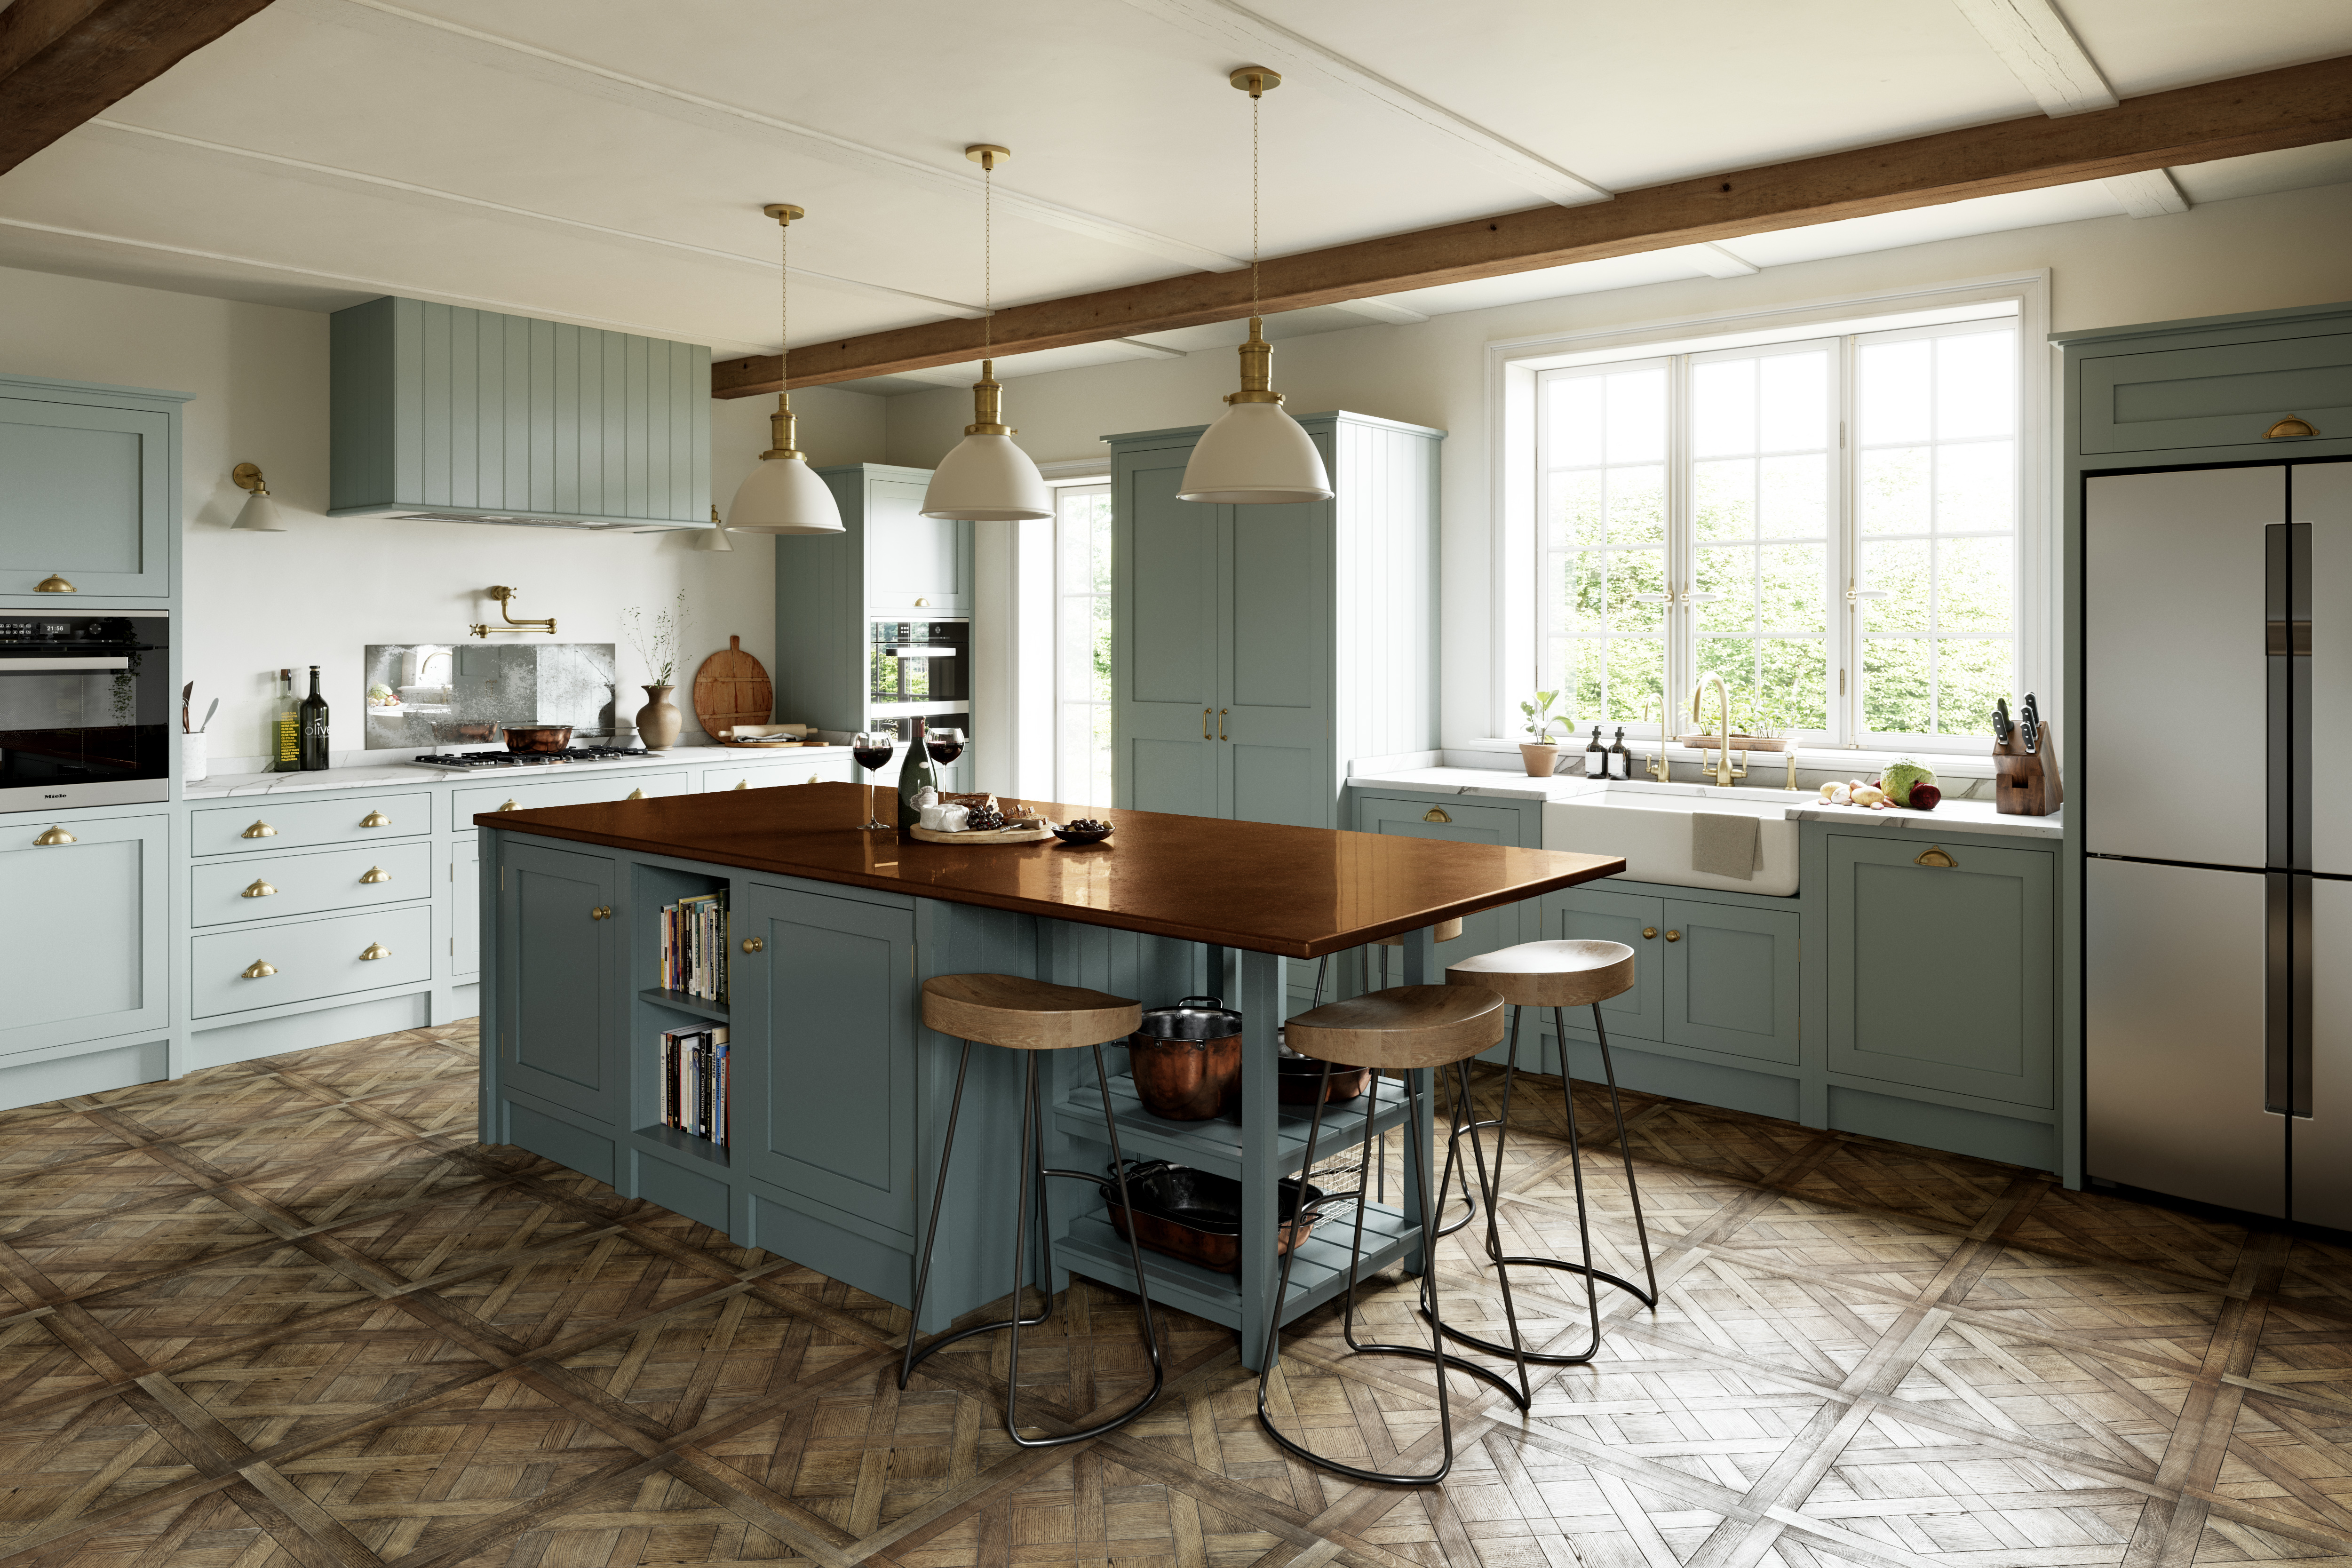 Ex display shaker style Kingham kitchen cooking elevation with miele wolf cooker and sub zero fridge